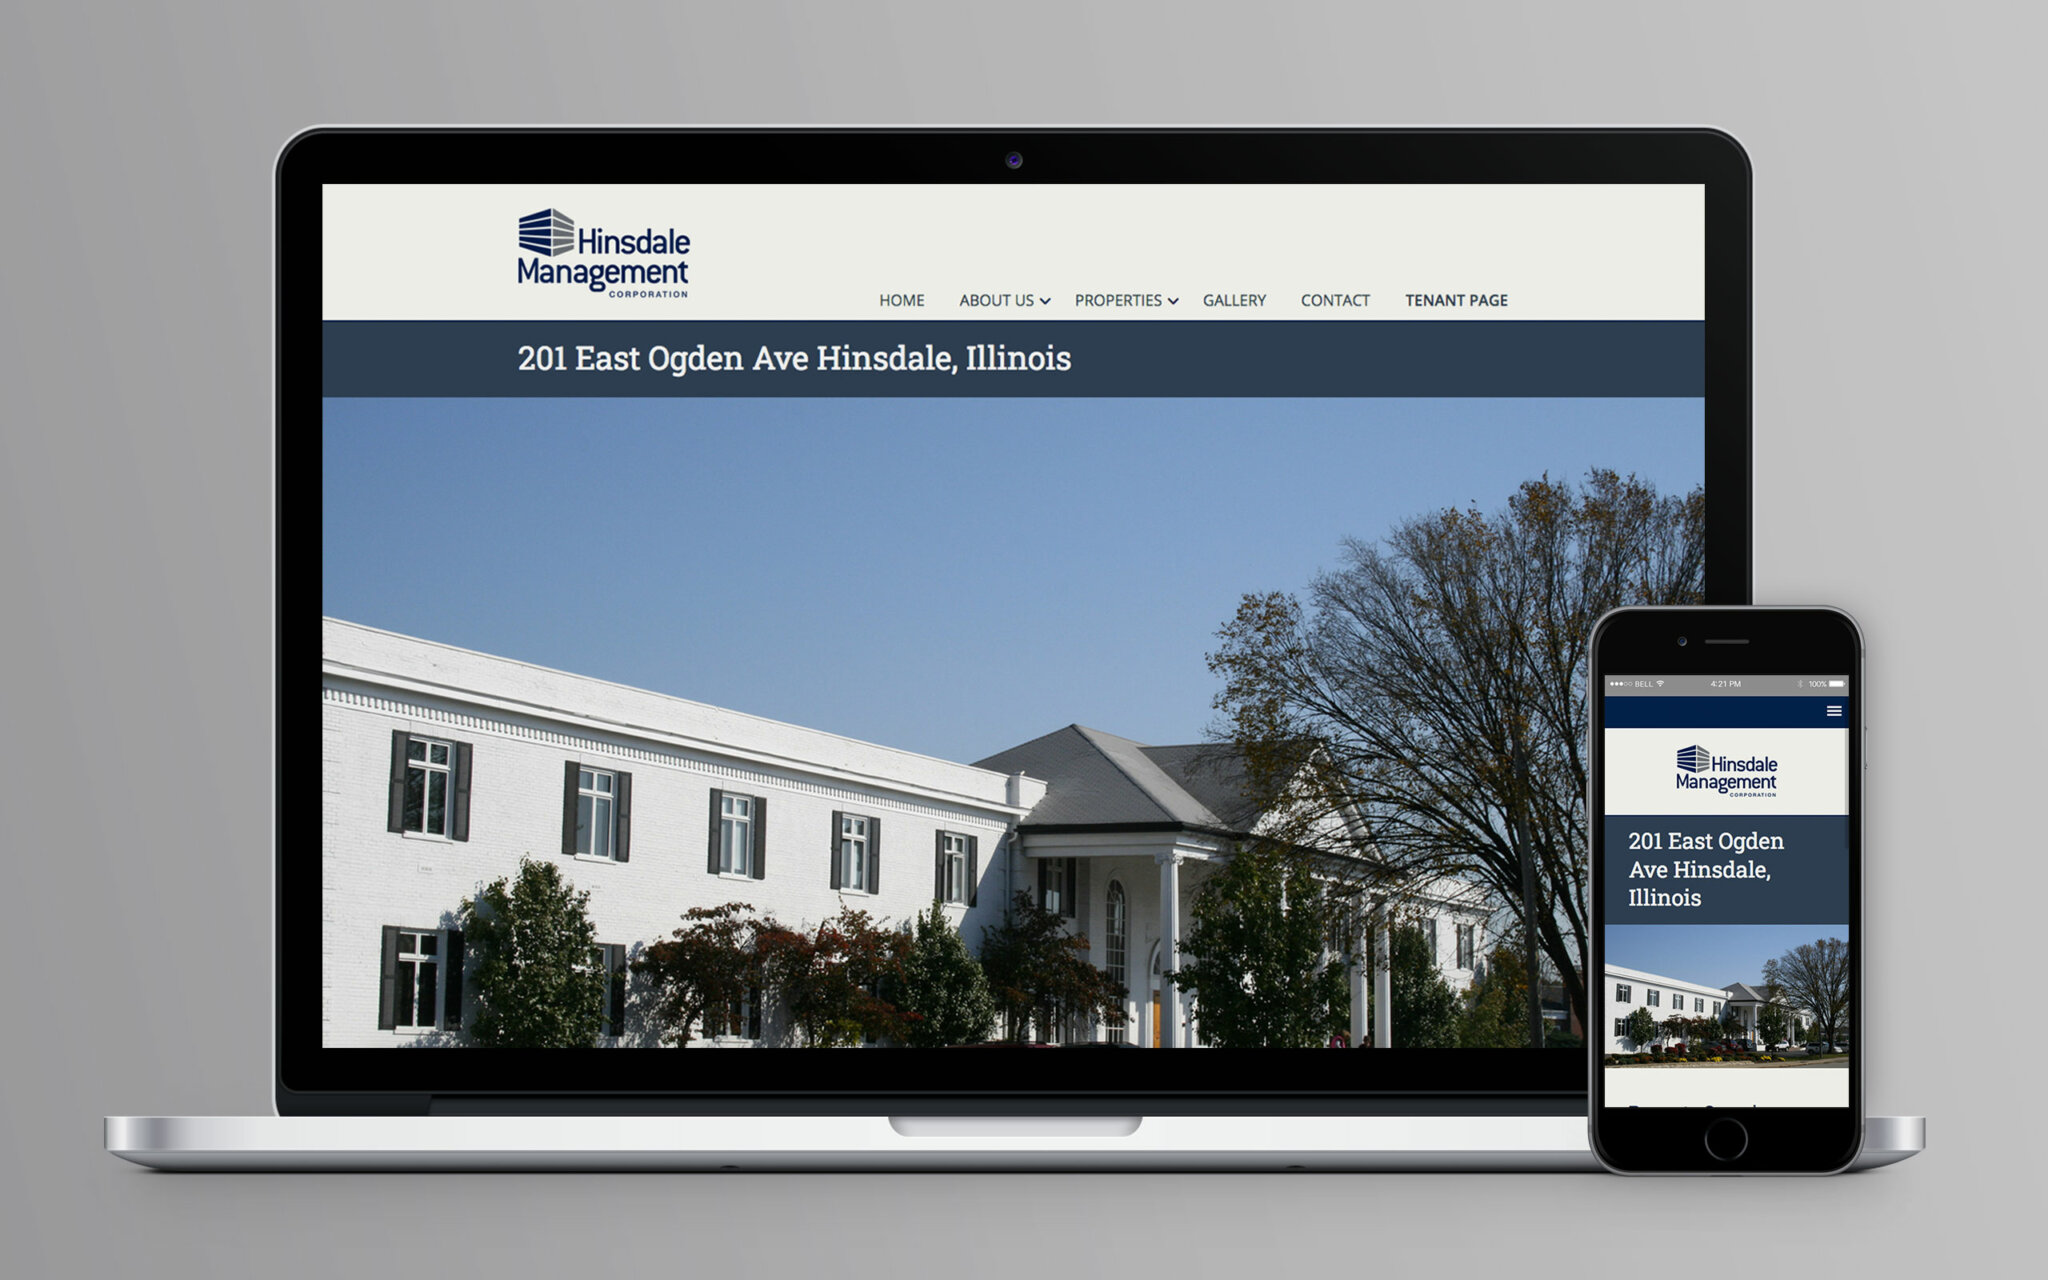 Hinsdale Management Corporation Website Properties